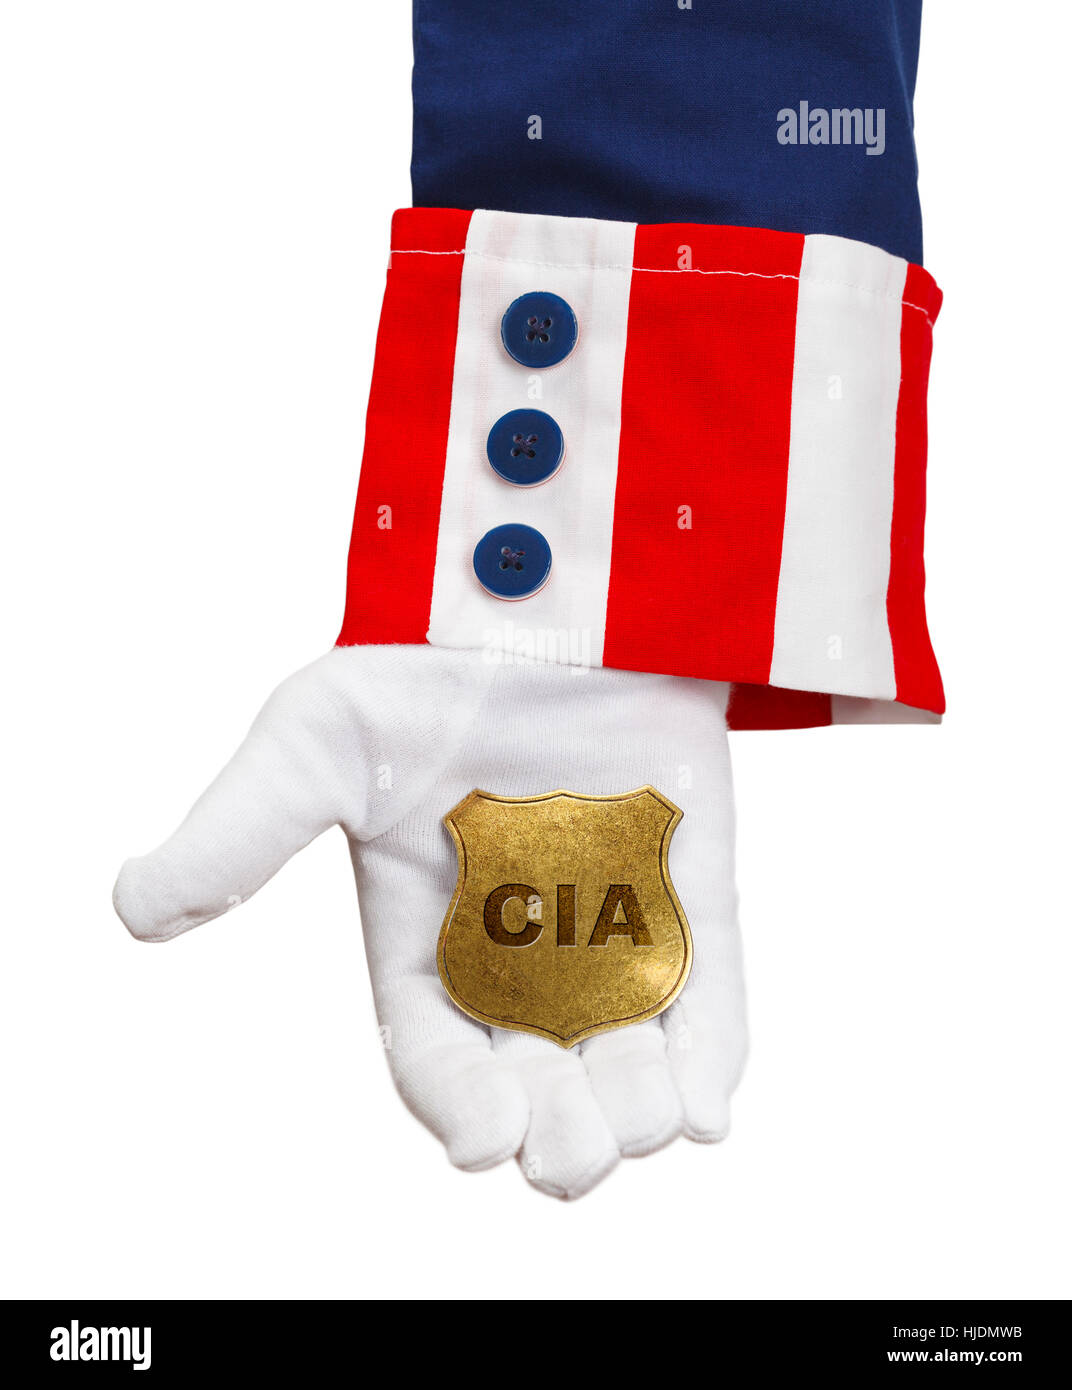 President Holding CIA Badge Isolated on White. - Stock Image